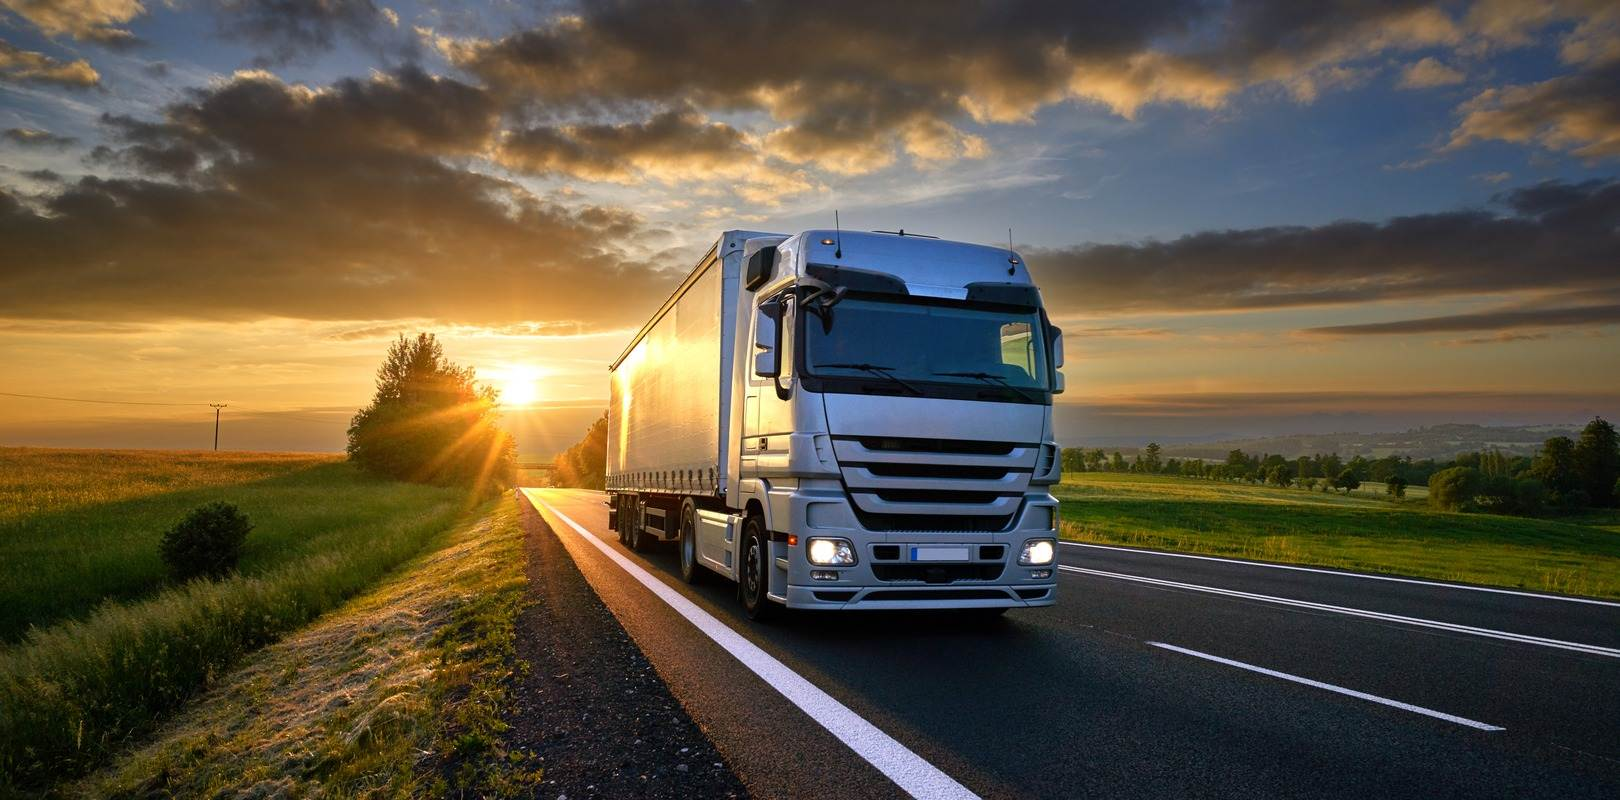 Haulage vehicle driving through countryside at sunset